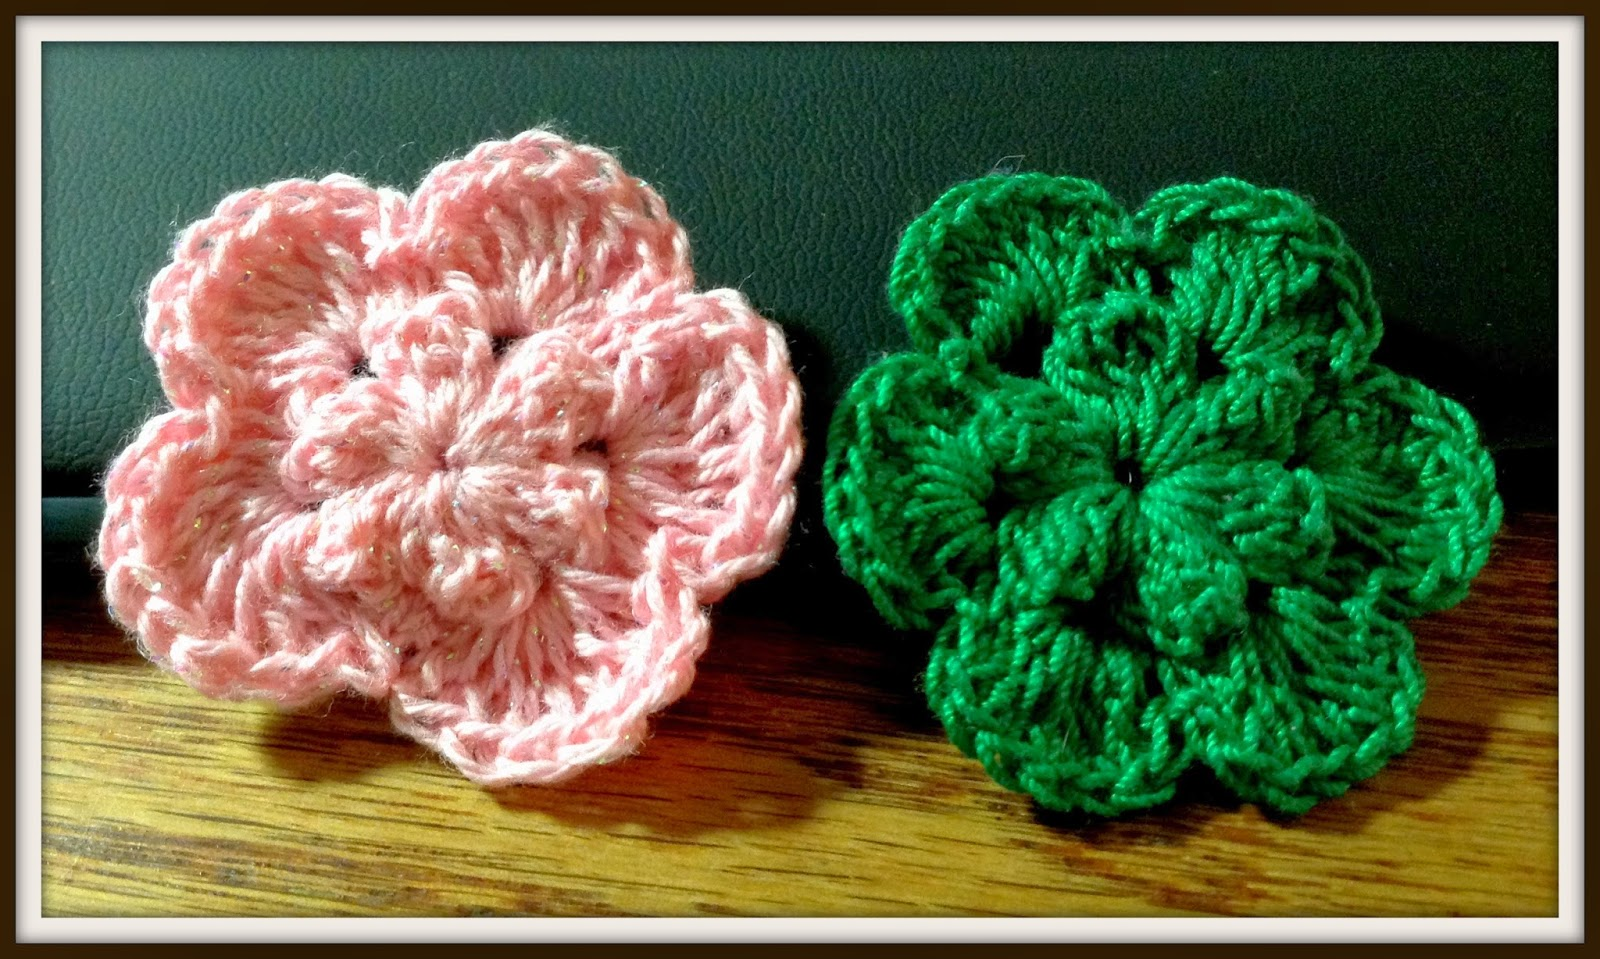 Crochet Flower Pattern Thread : The Shtick I Do!: Crochet Thread Flower with Free Pattern